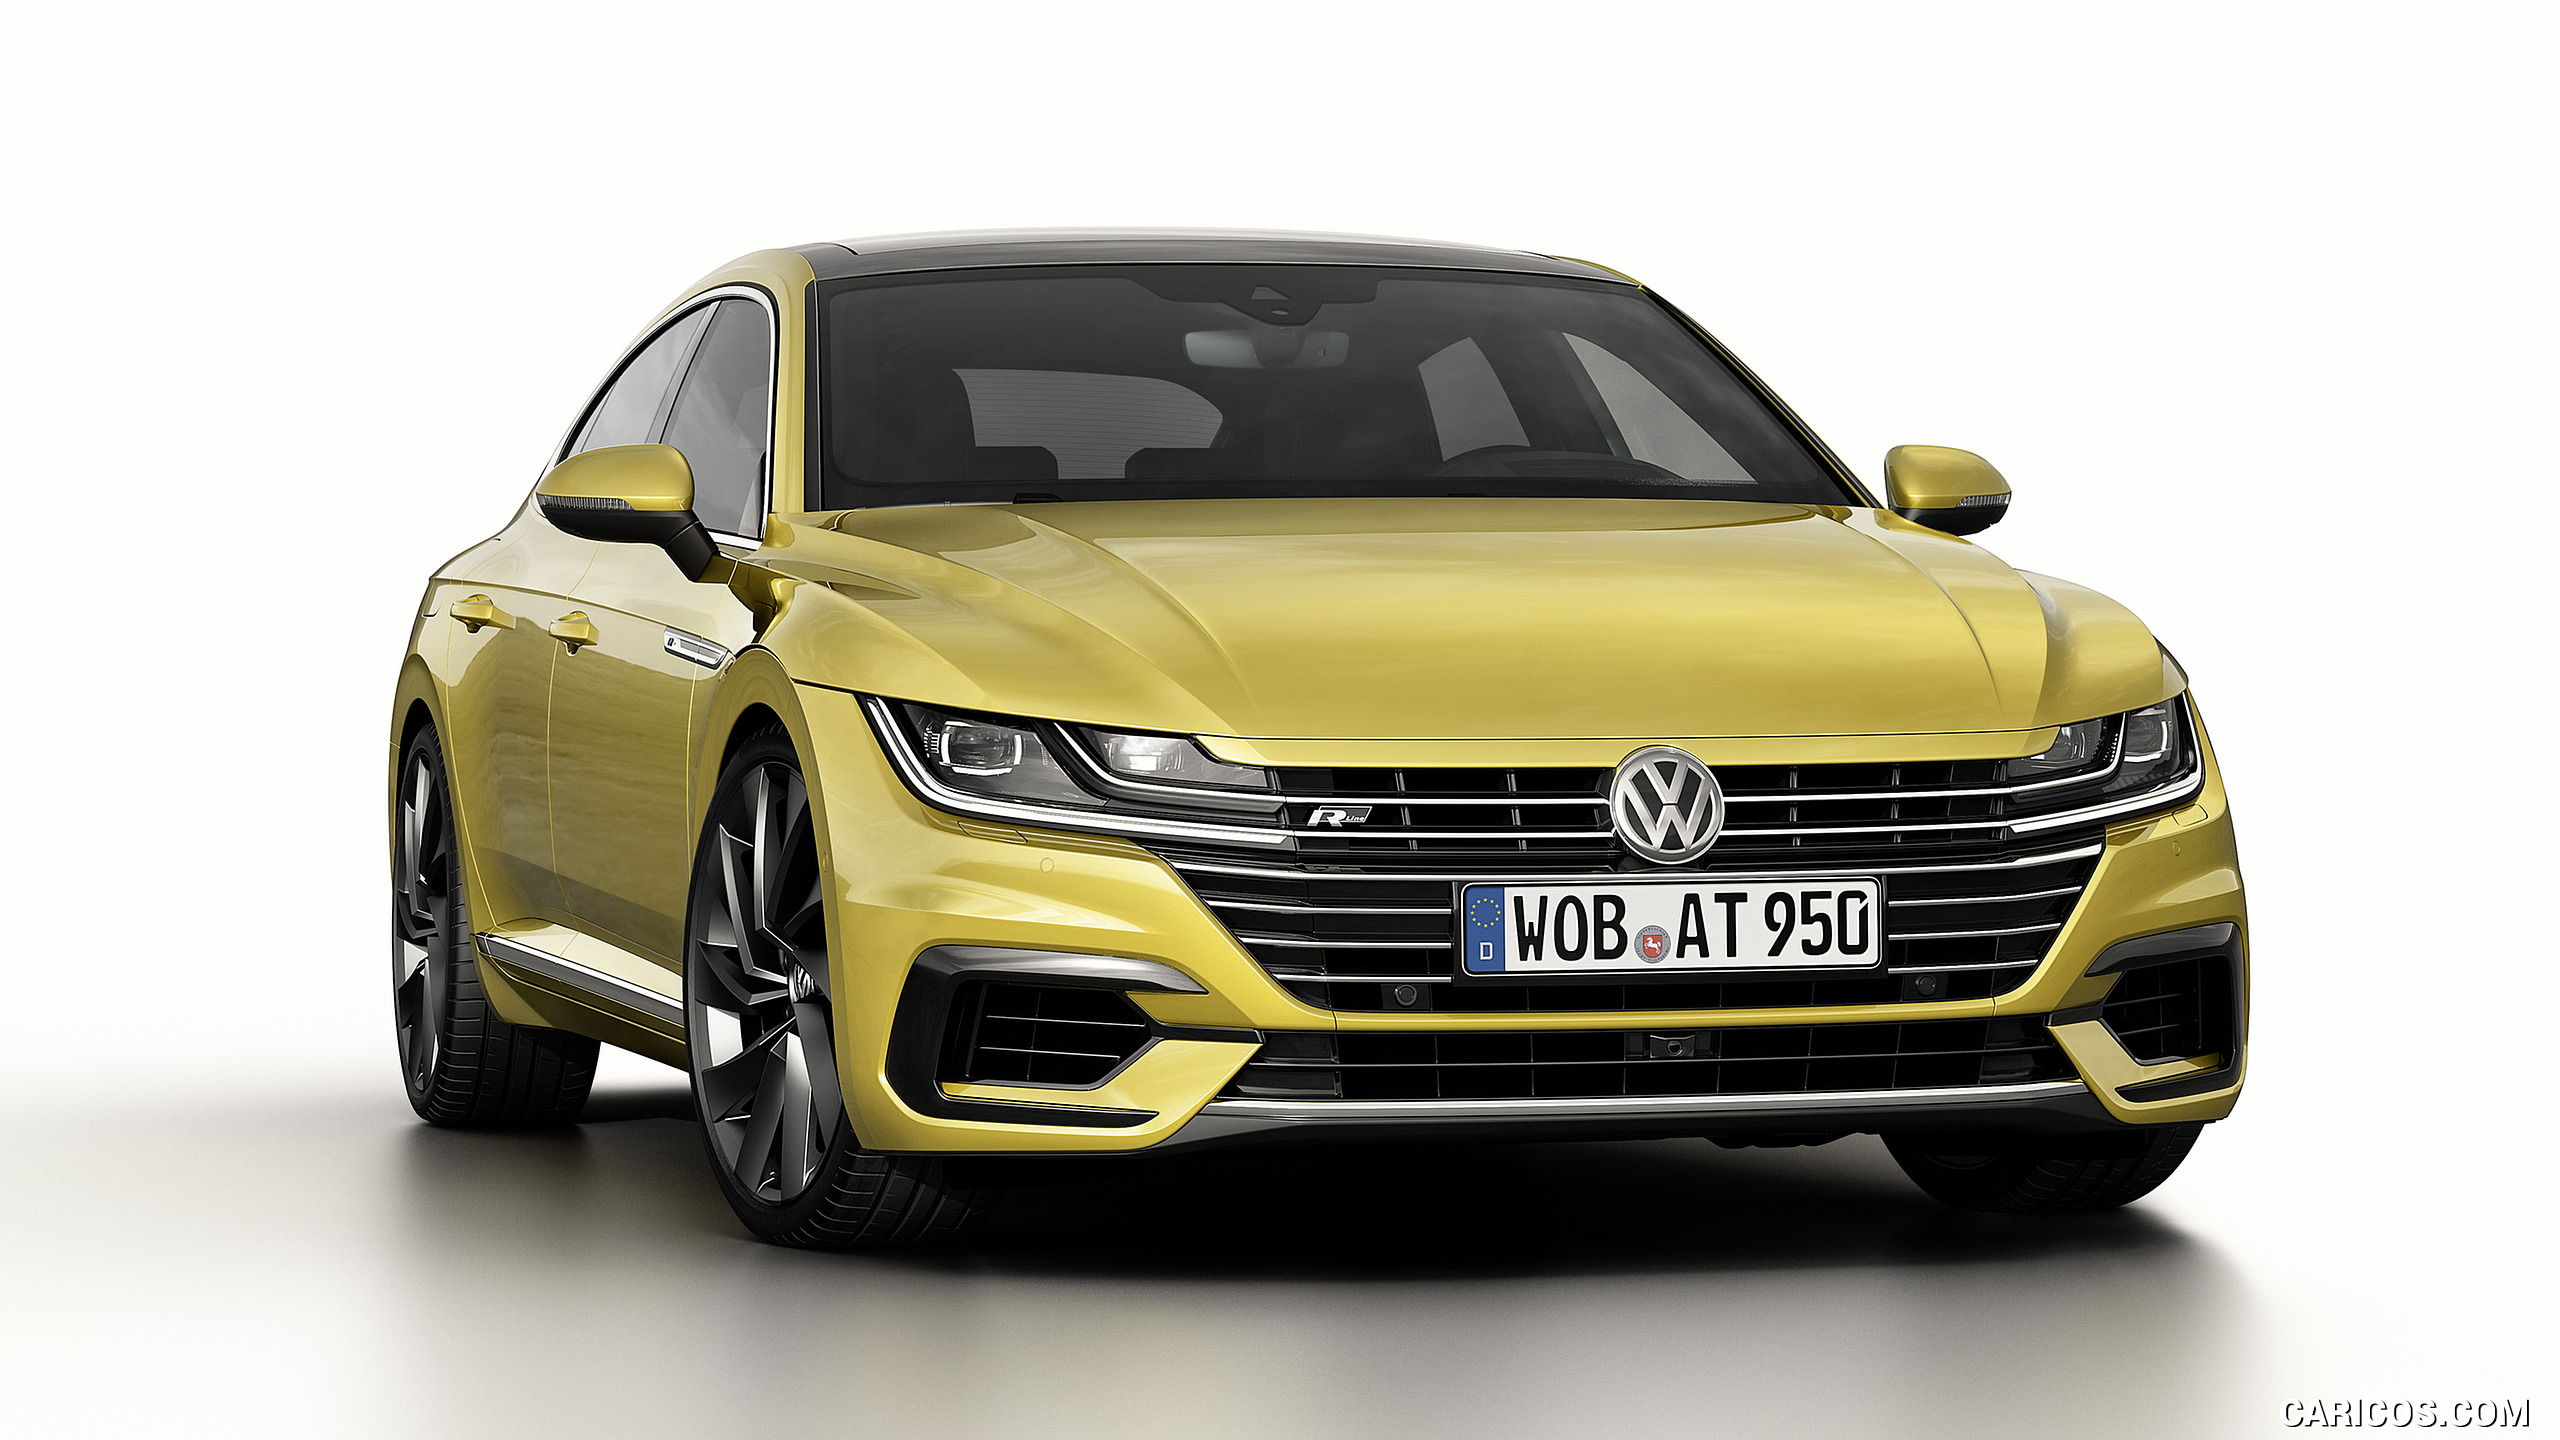 2560x1440 - Volkswagen Arteon Wallpapers 18